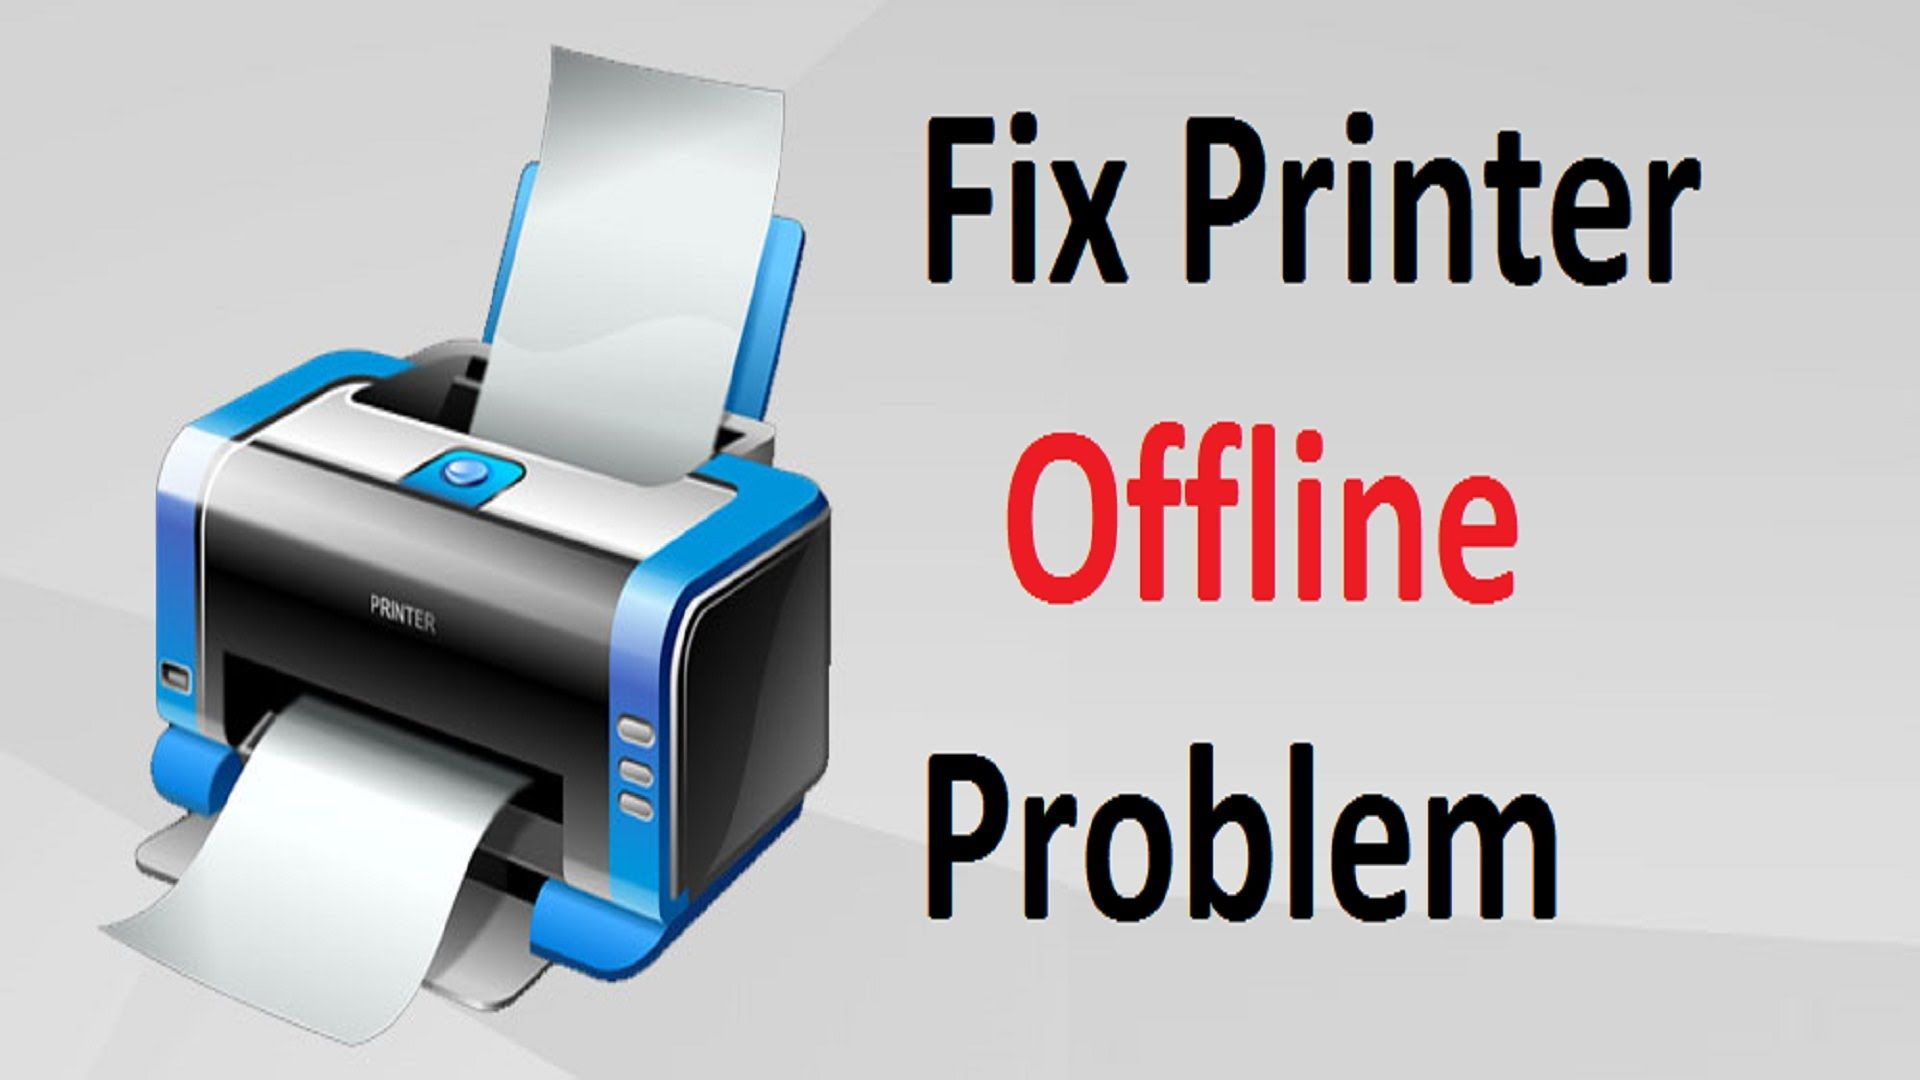 1 888 687 4491 Hp Printer Technical Support Phone Number For Help